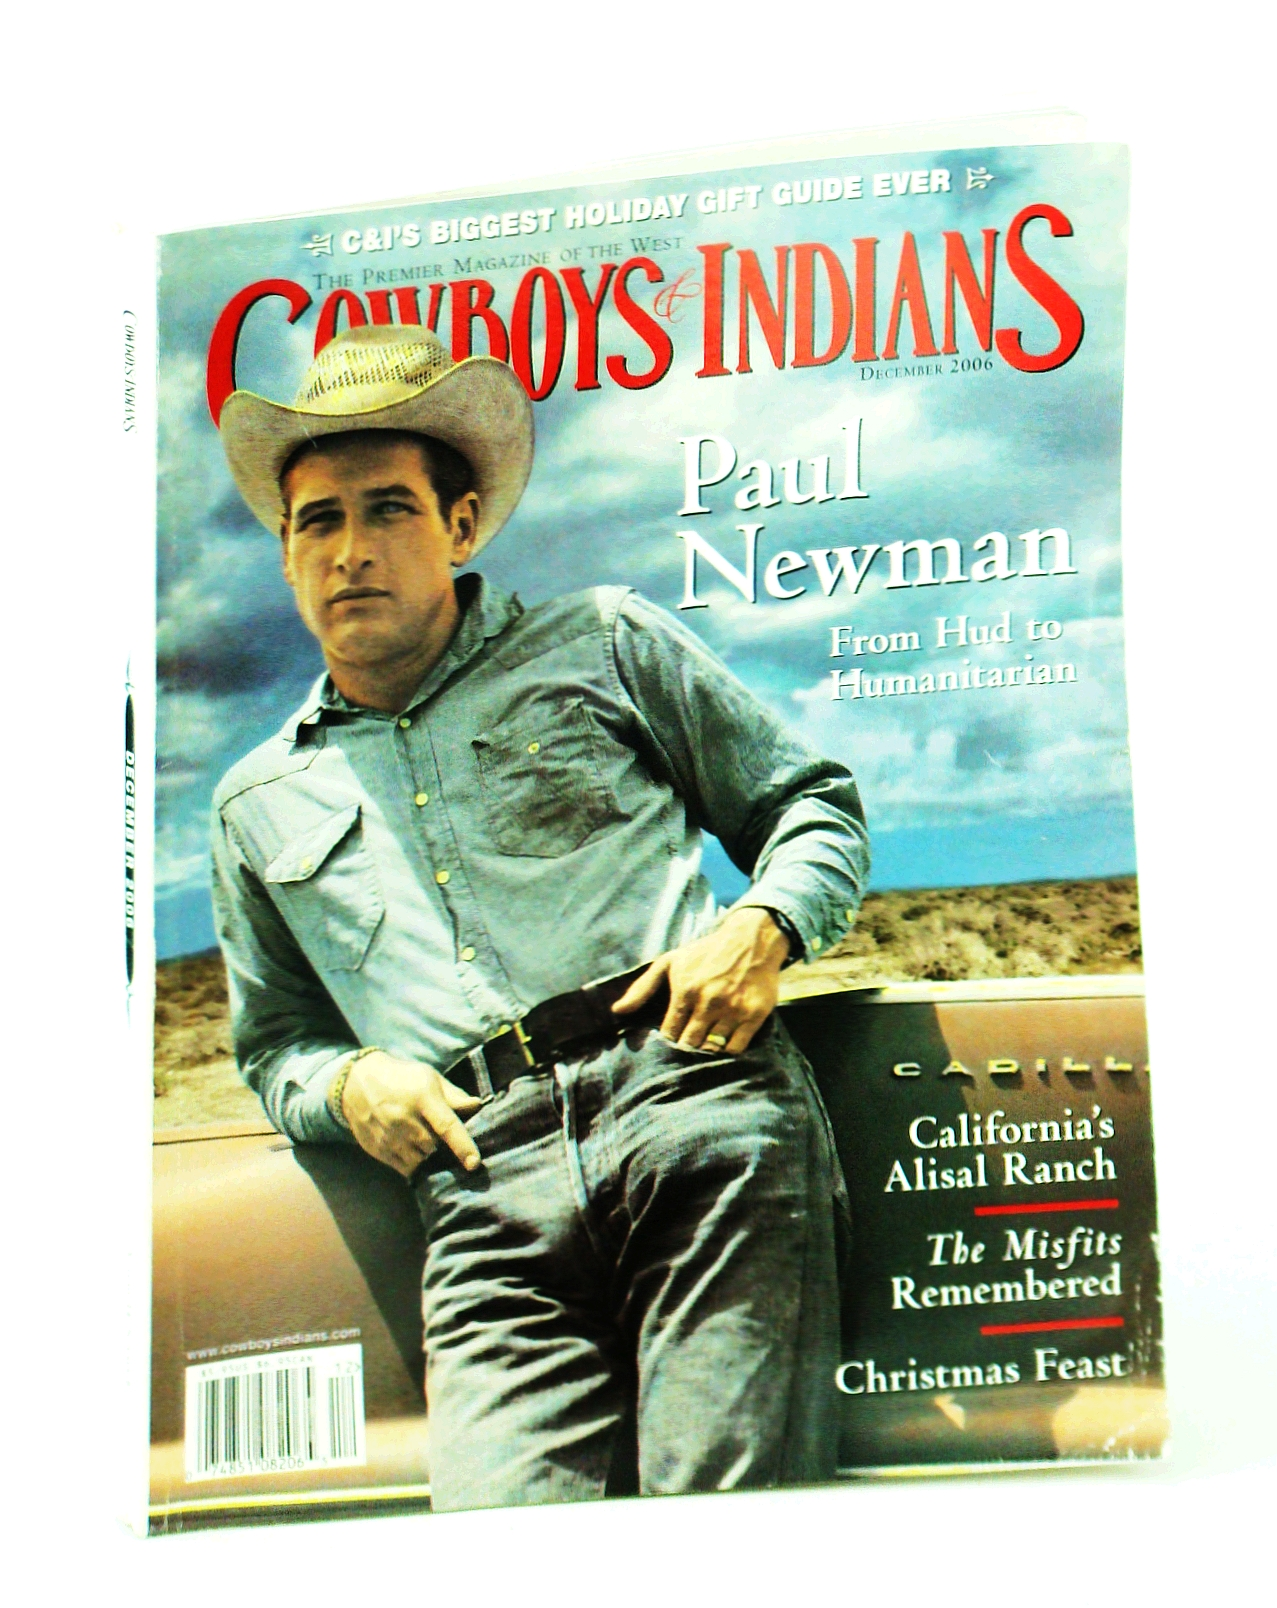 Image for Cowboys and Indians - The Premier Magazine of the West, December [Dec.] 2006 - Paul Newman Cover Photo